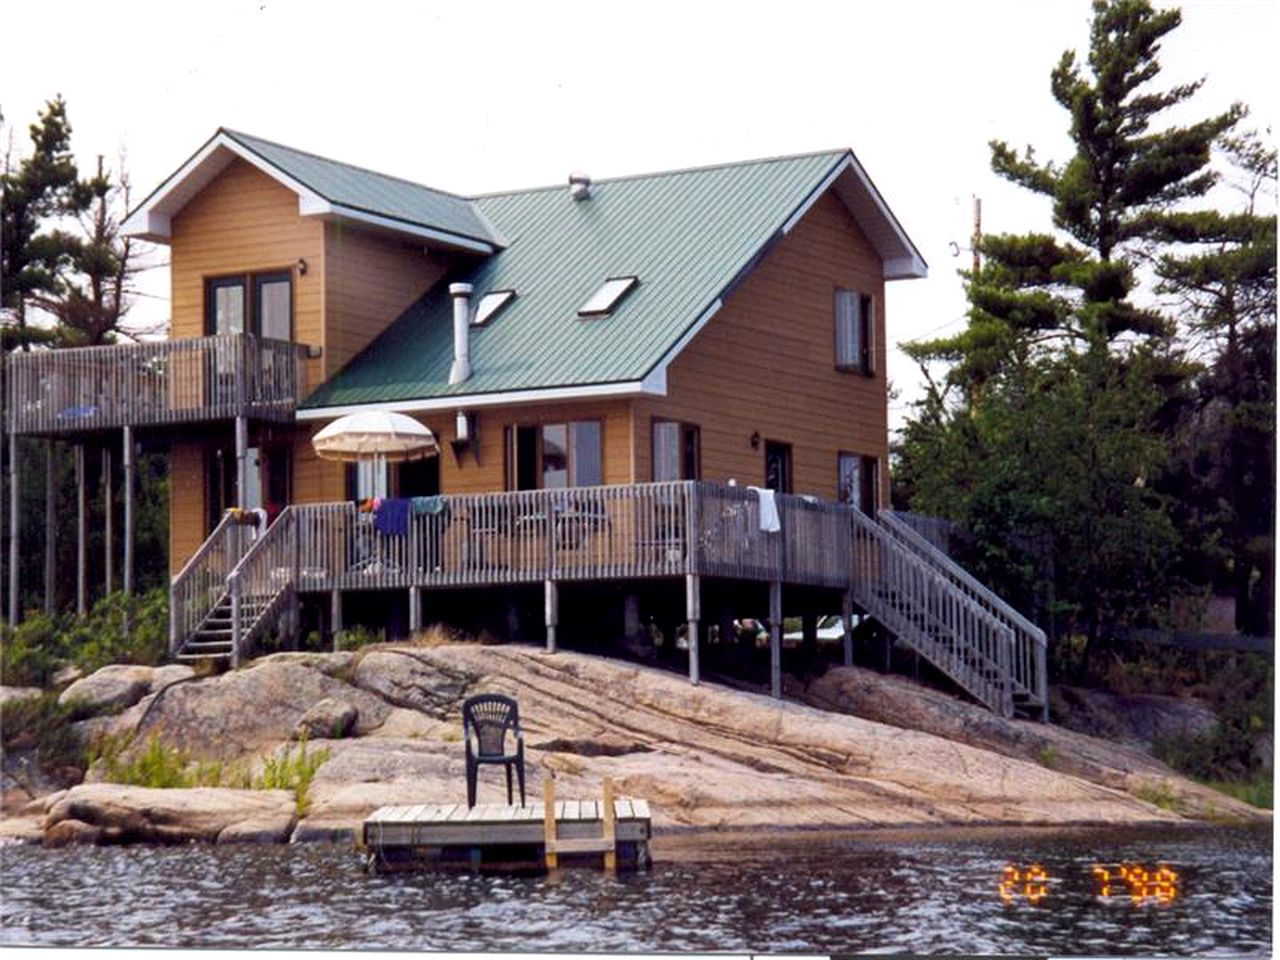 Beautiful log cabin in Sturgeon Bay, Ontario! Camping in style